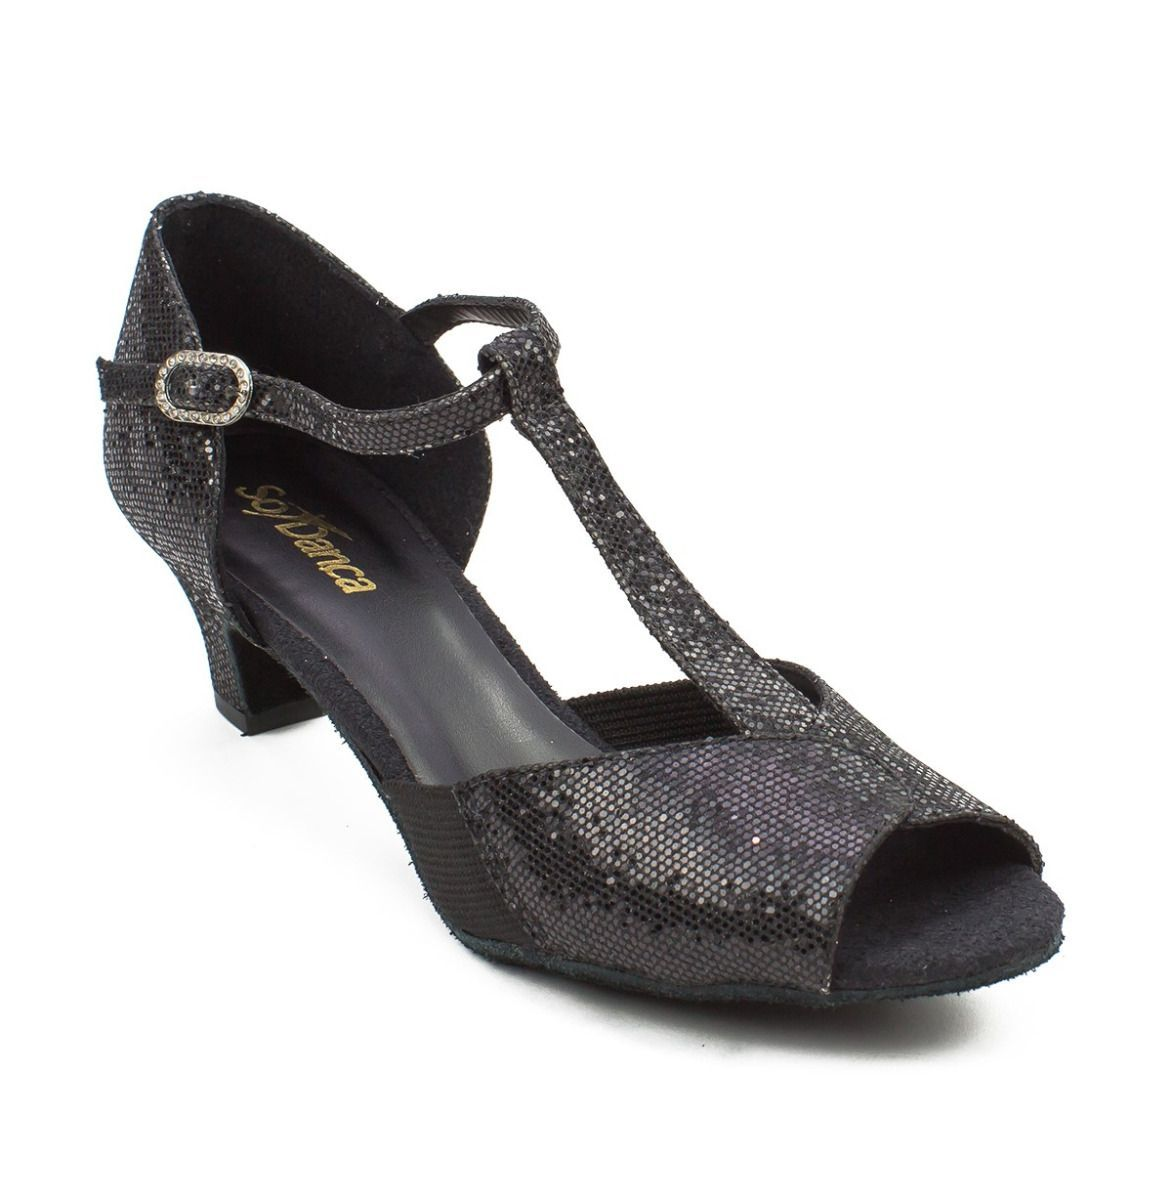 T-Strap Ballroom Dance Shoe Black Sparkle